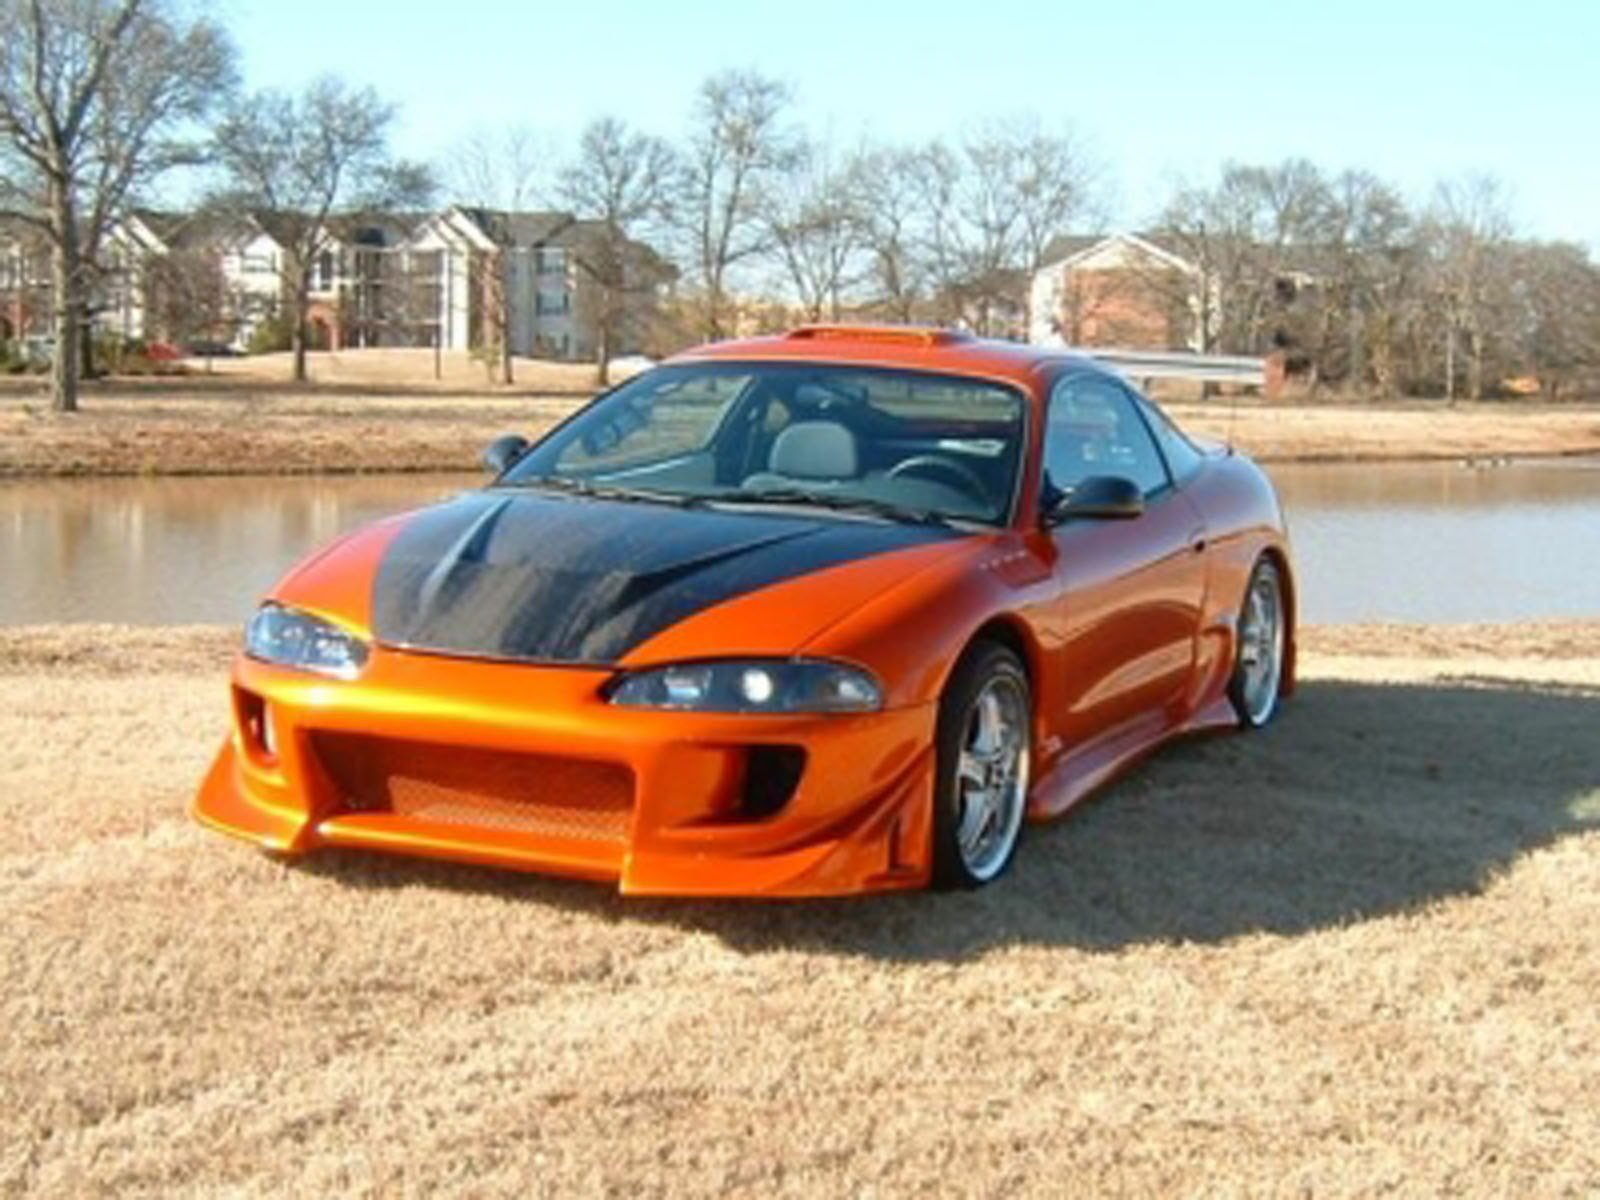 1996 mitsubishi eclipse gs for sale blmgtn indiana. Black Bedroom Furniture Sets. Home Design Ideas